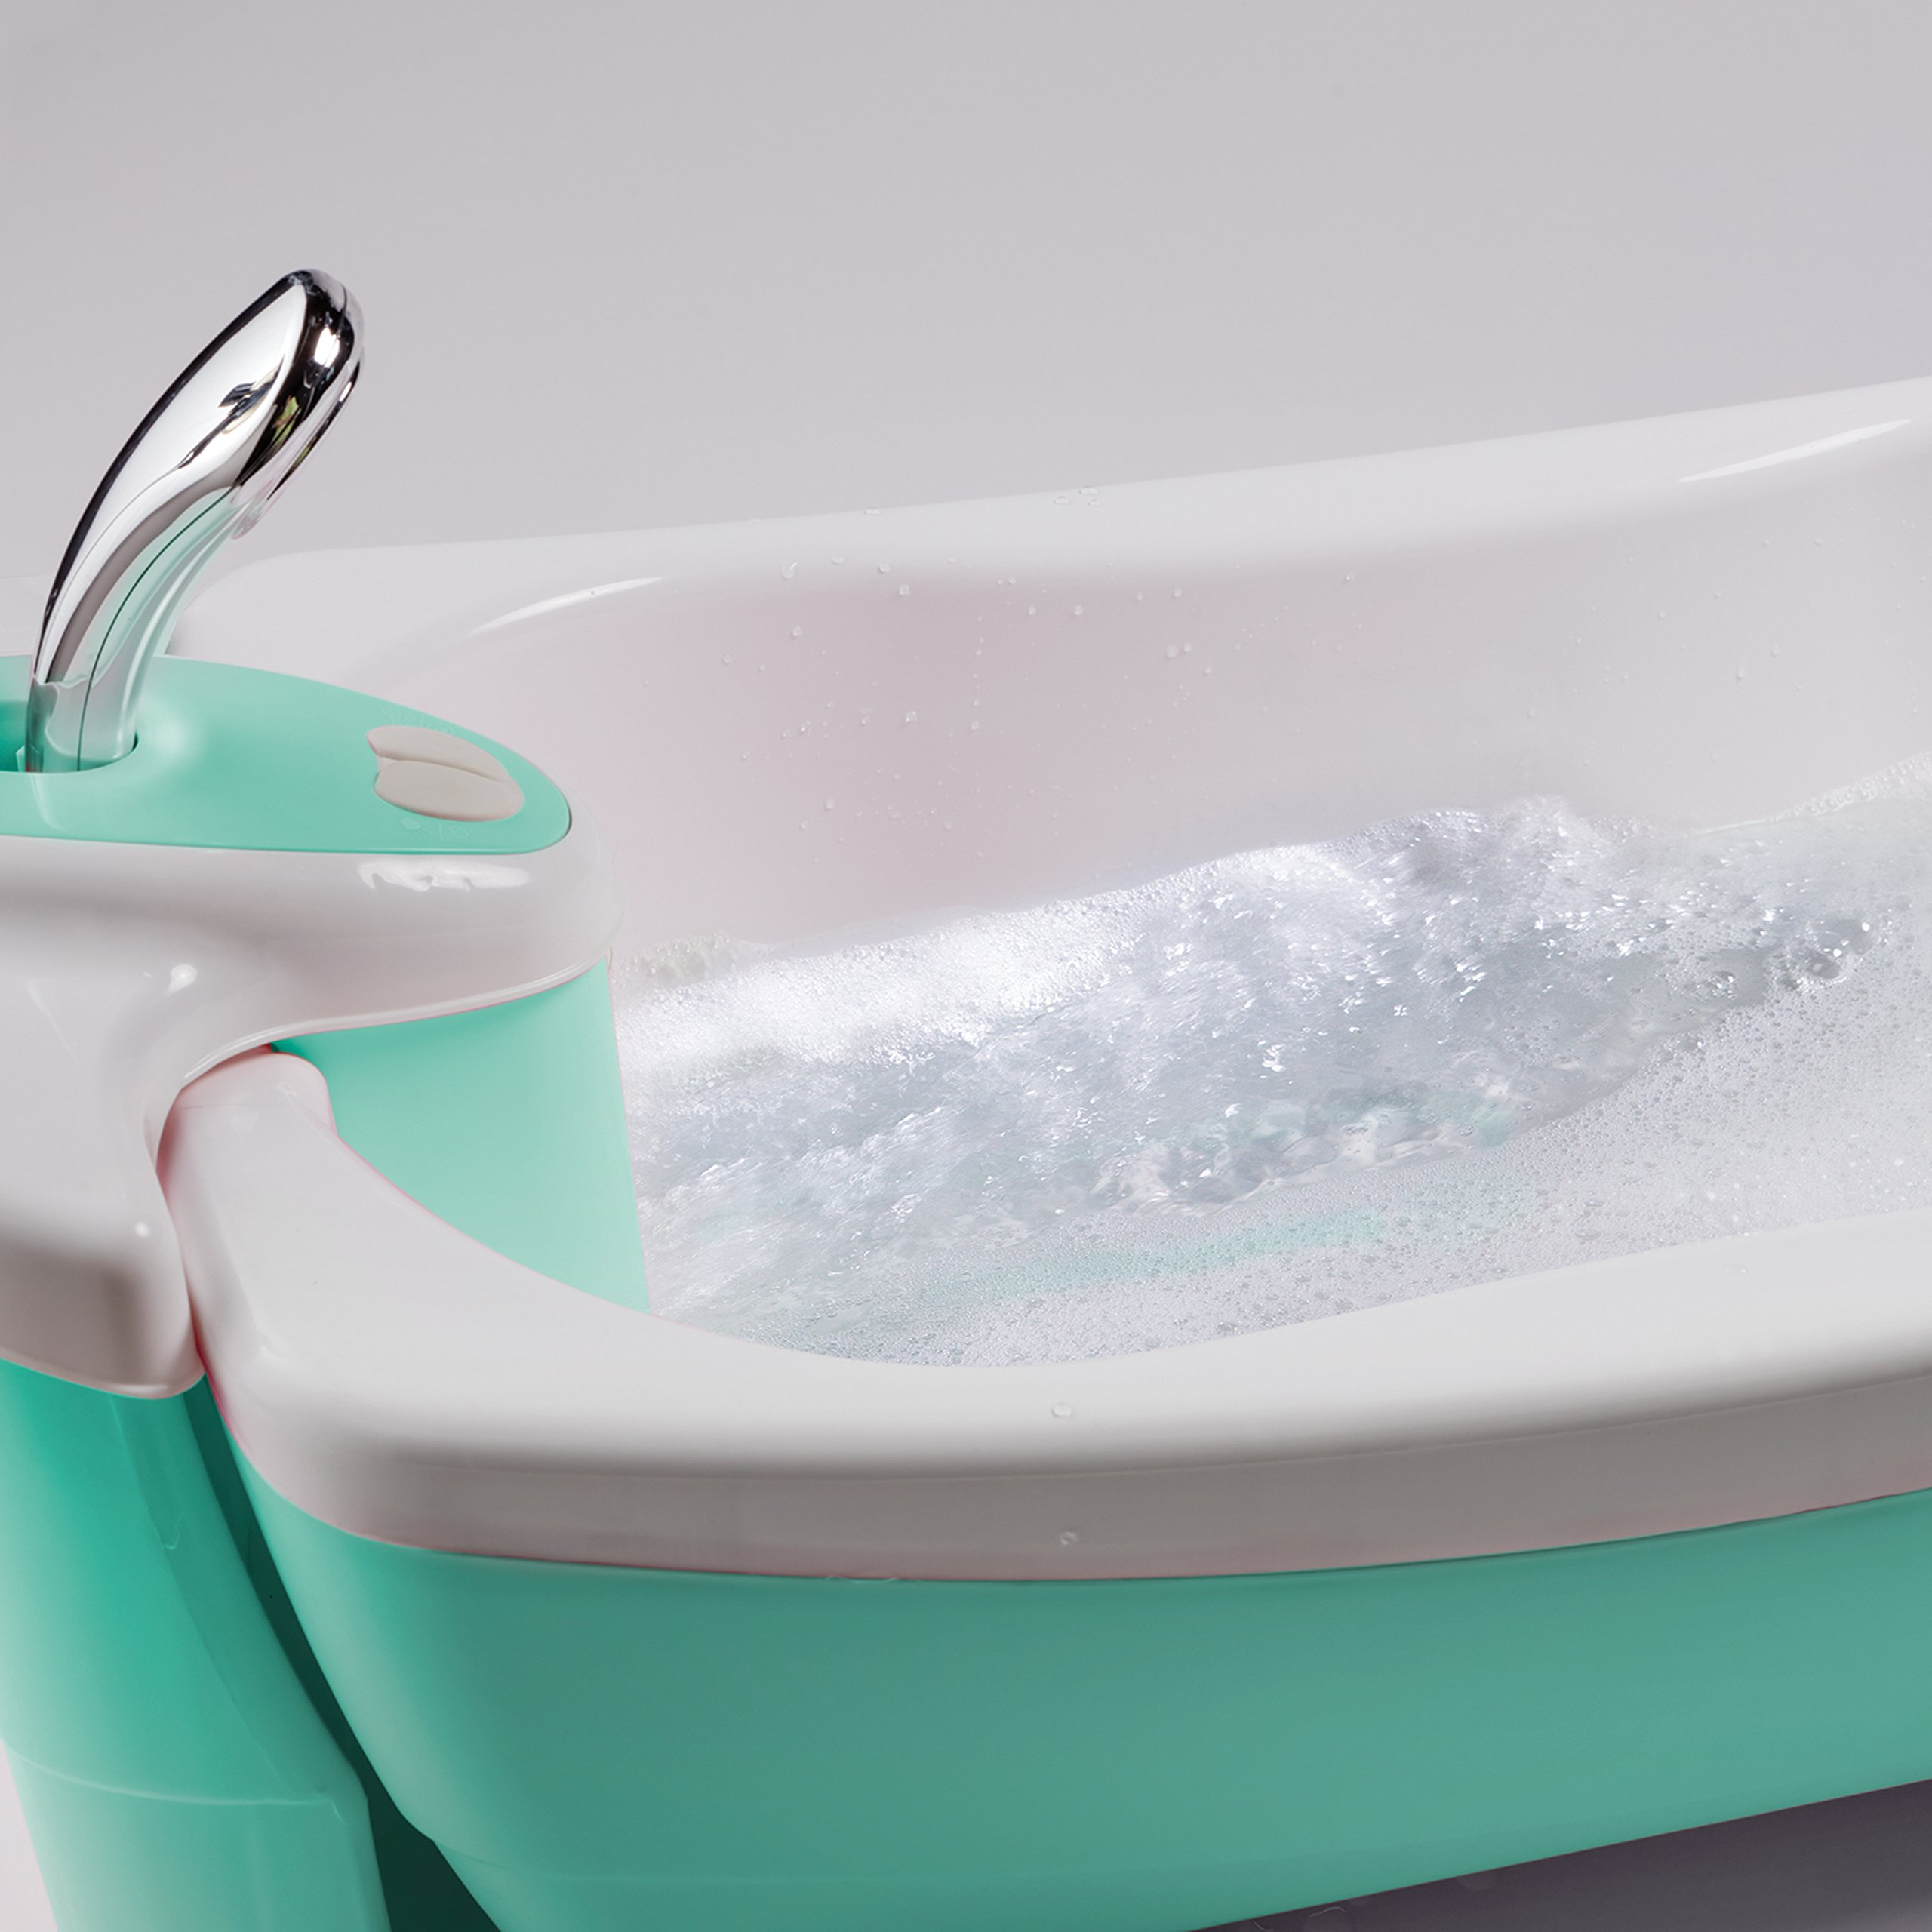 Summer Infant Lil Luxuries Whirlpool Bubbling Spa & Shower Bath Tub, Aqua by Summer Infant (Image #3)